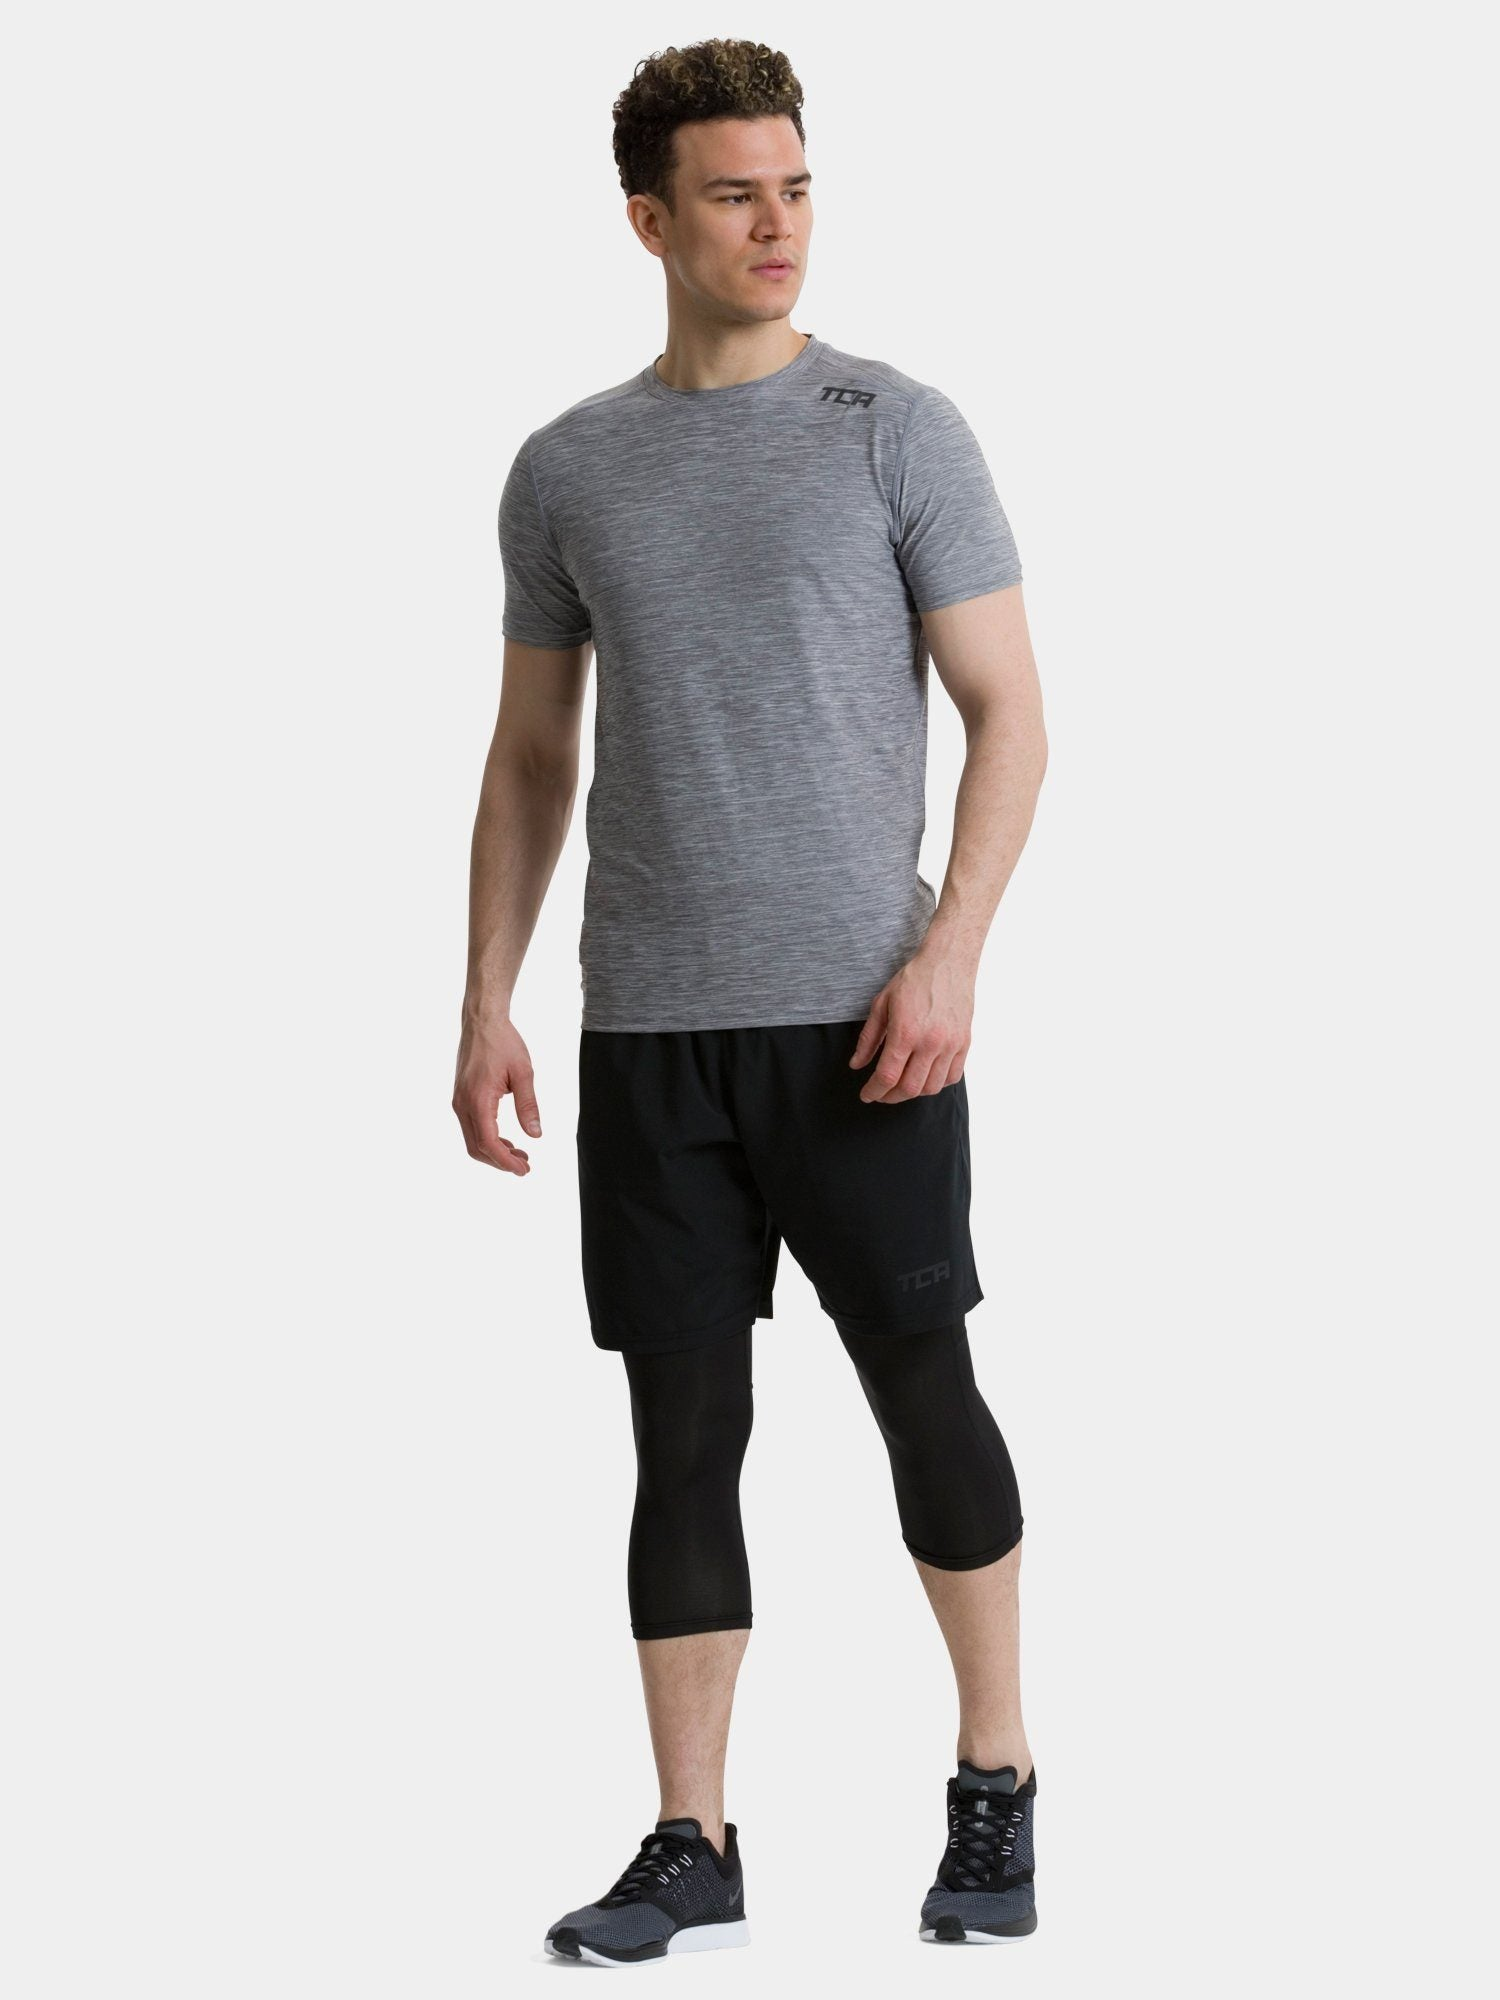 TCA Men's Galaxy Short Sleeve Gym Top - Cool Grey